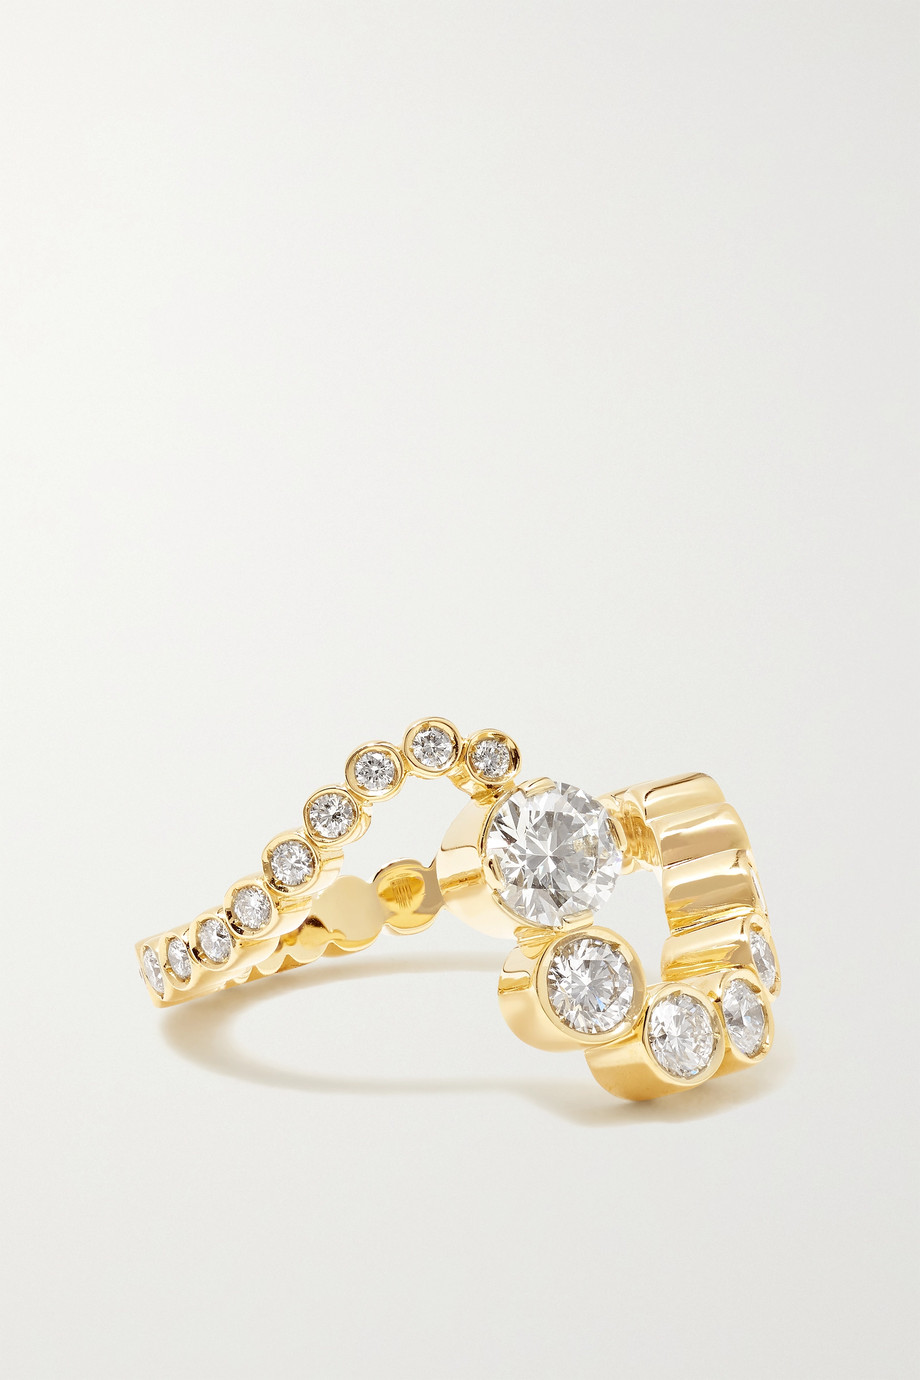 SOPHIE BILLE BRAHE Grand Ocean Ensemble 18-karat gold diamond ring